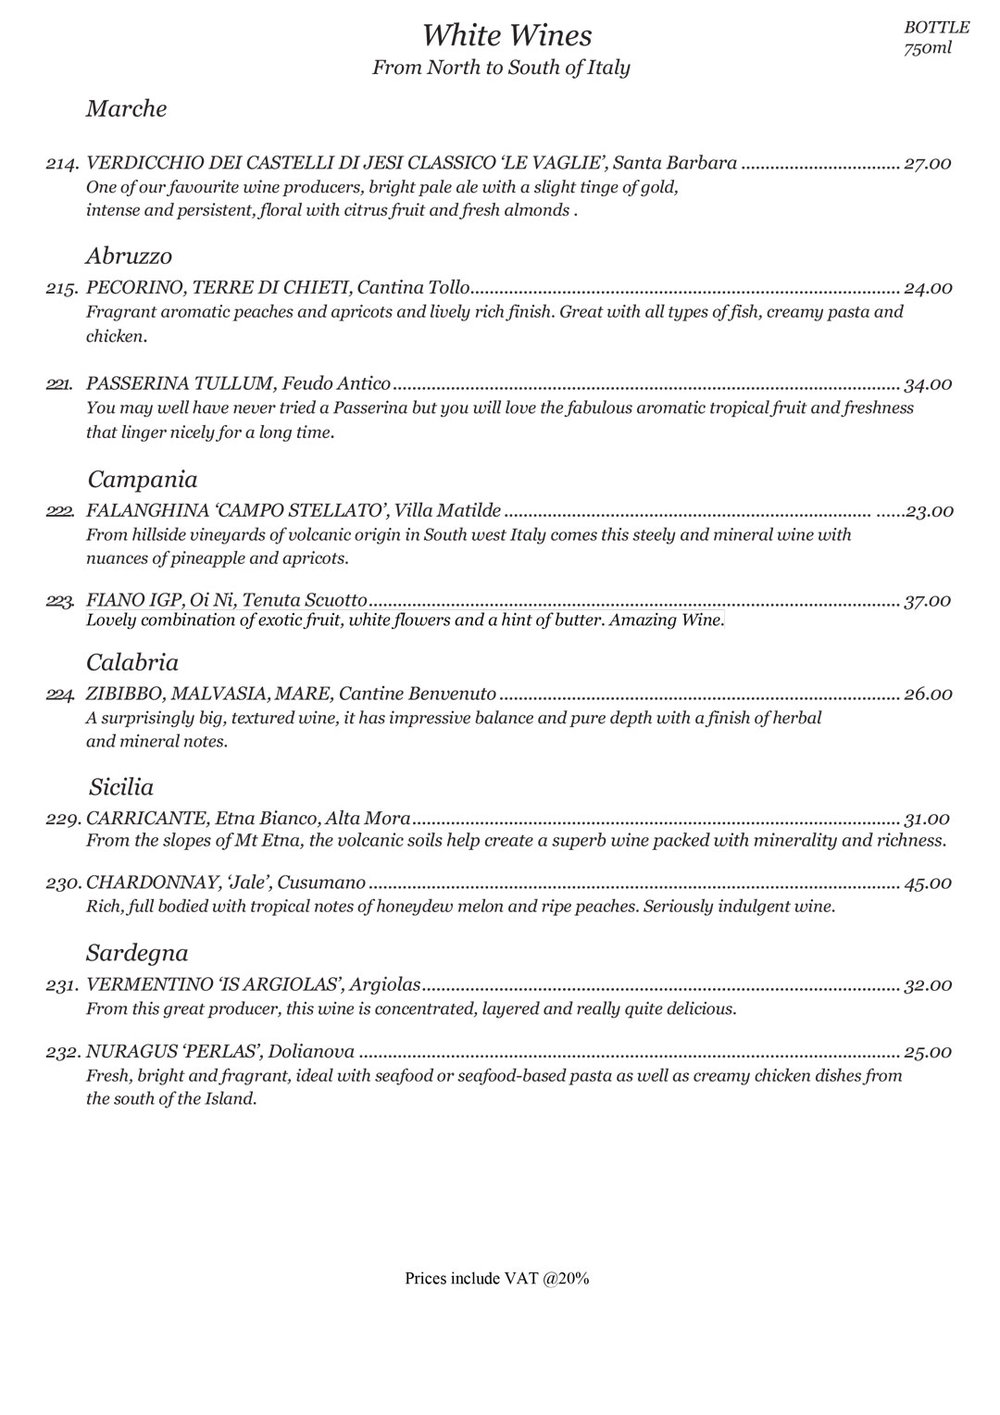 Amarone-A4-Wine-List-April-2018-Final-4-4-18_Part5.jpg